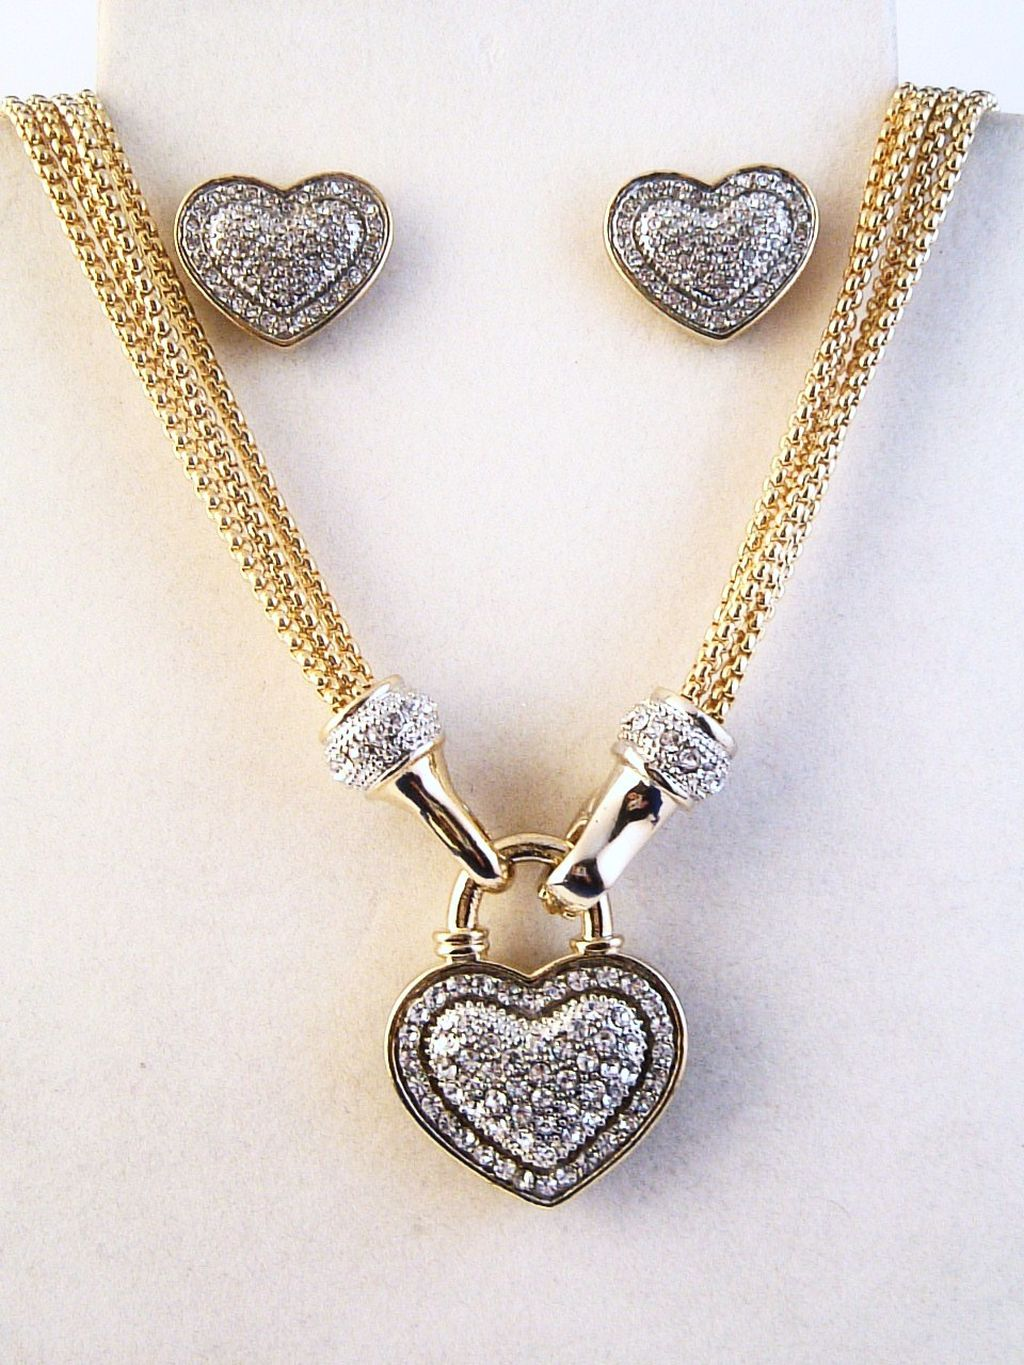 Designer's Touch Diamond Heart Pendant Necklace Earrings Jewelry Set